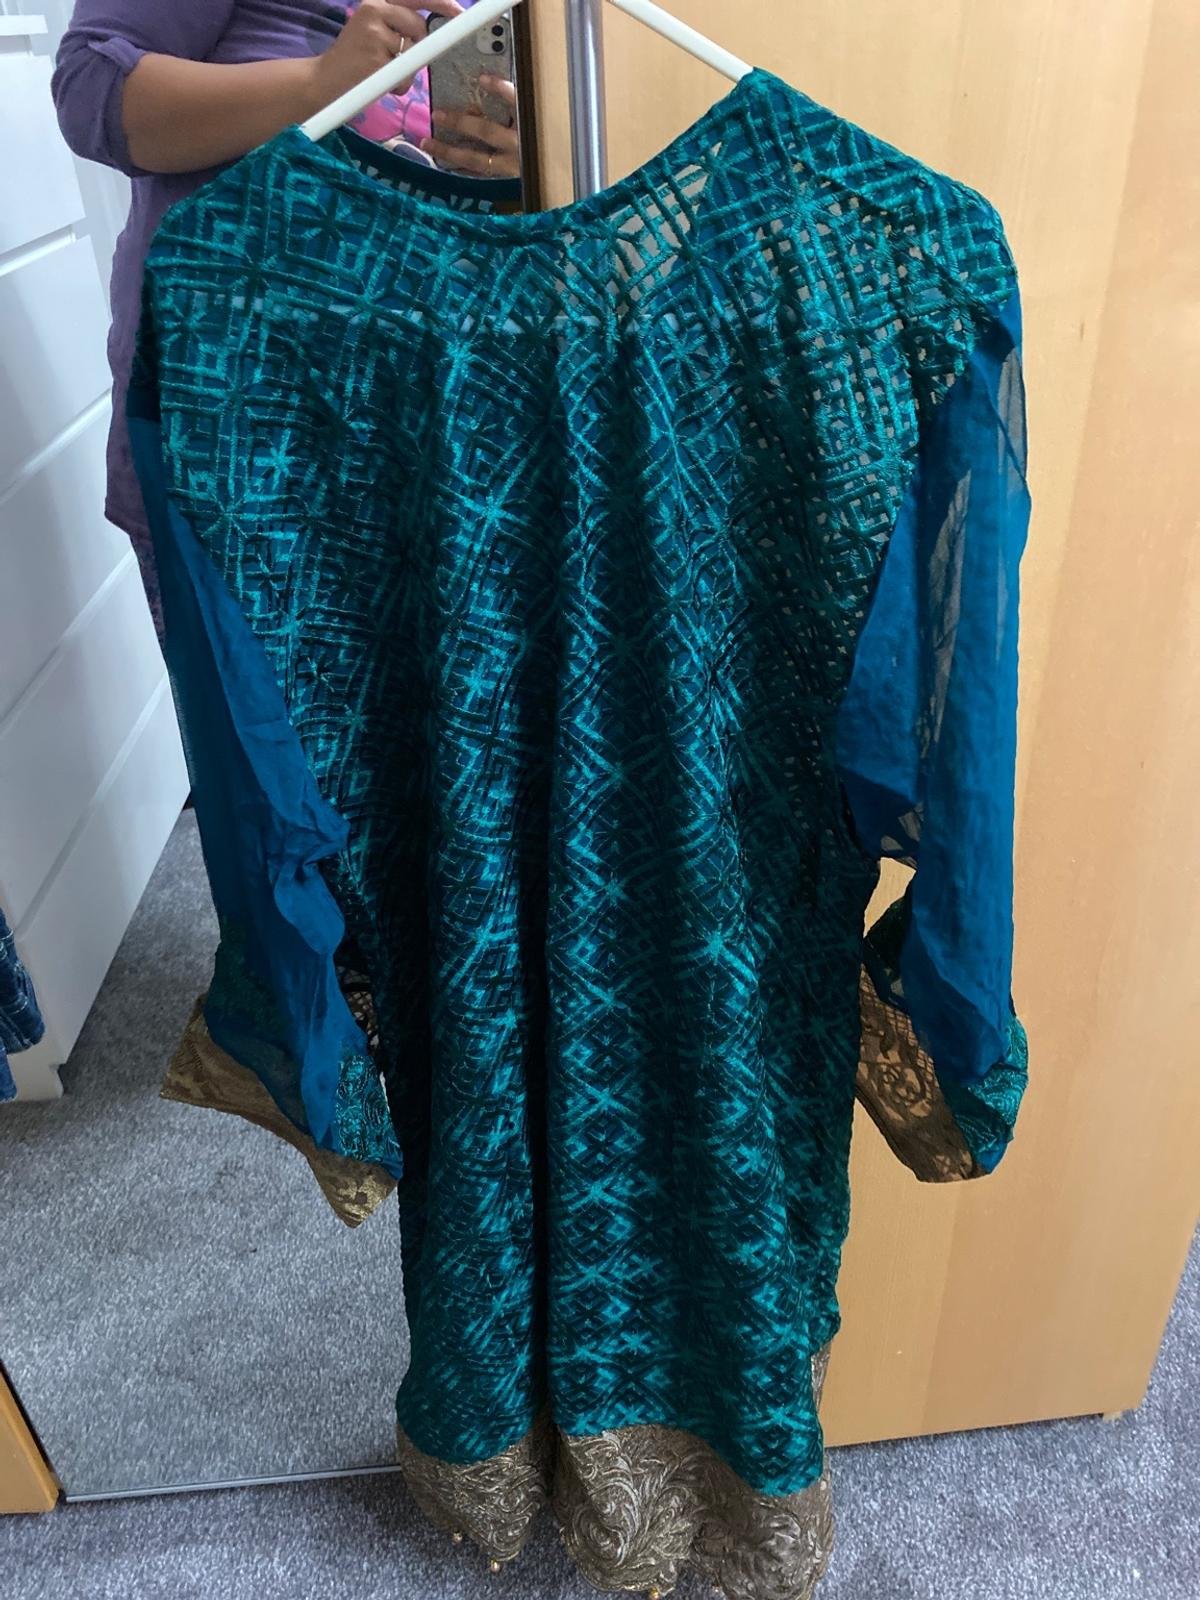 Brand new Size large to xl Comes with kameez,shameez, trouser and chiffon duppata (4pc)